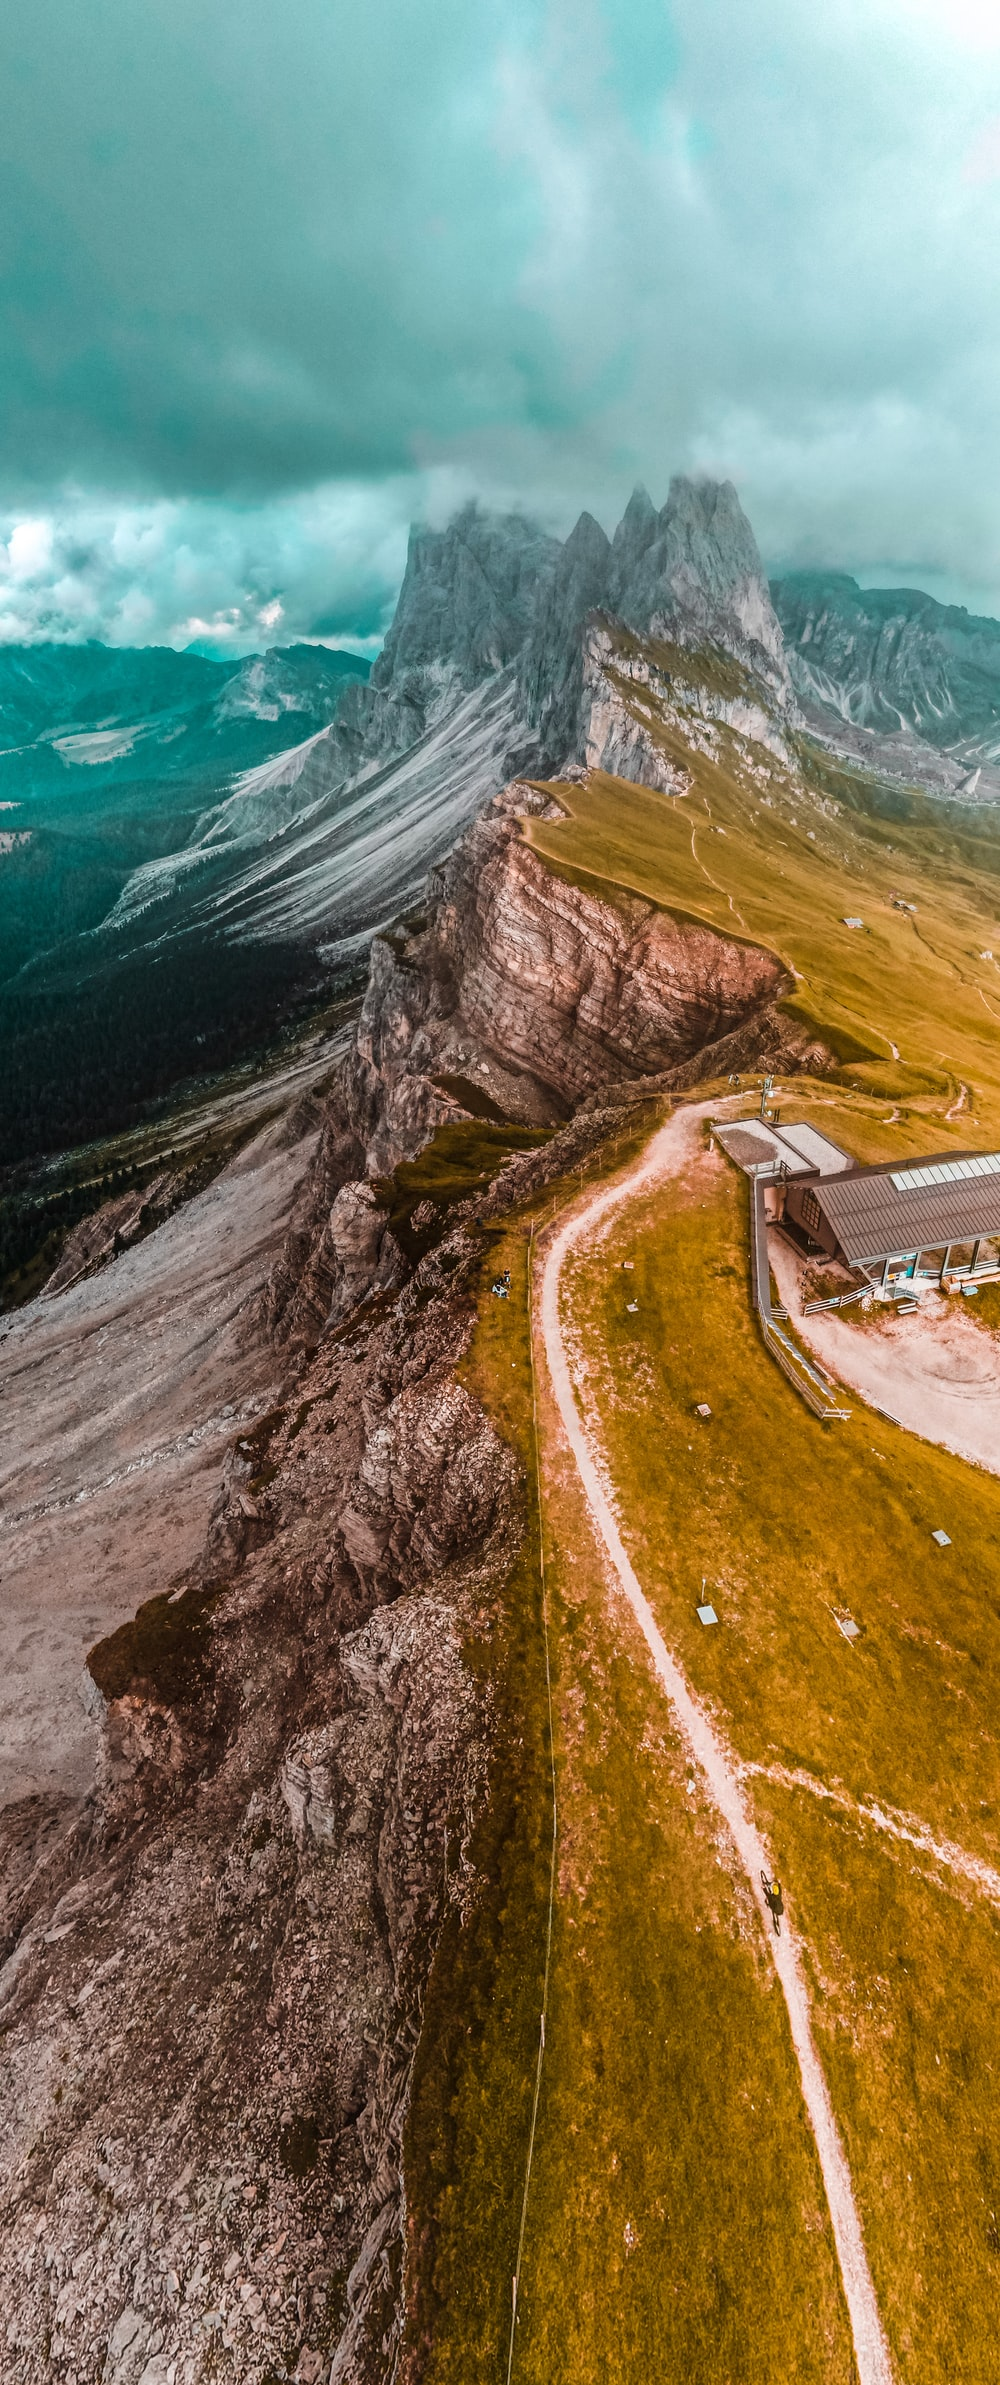 aerial view of house on cliff near body of water during daytime